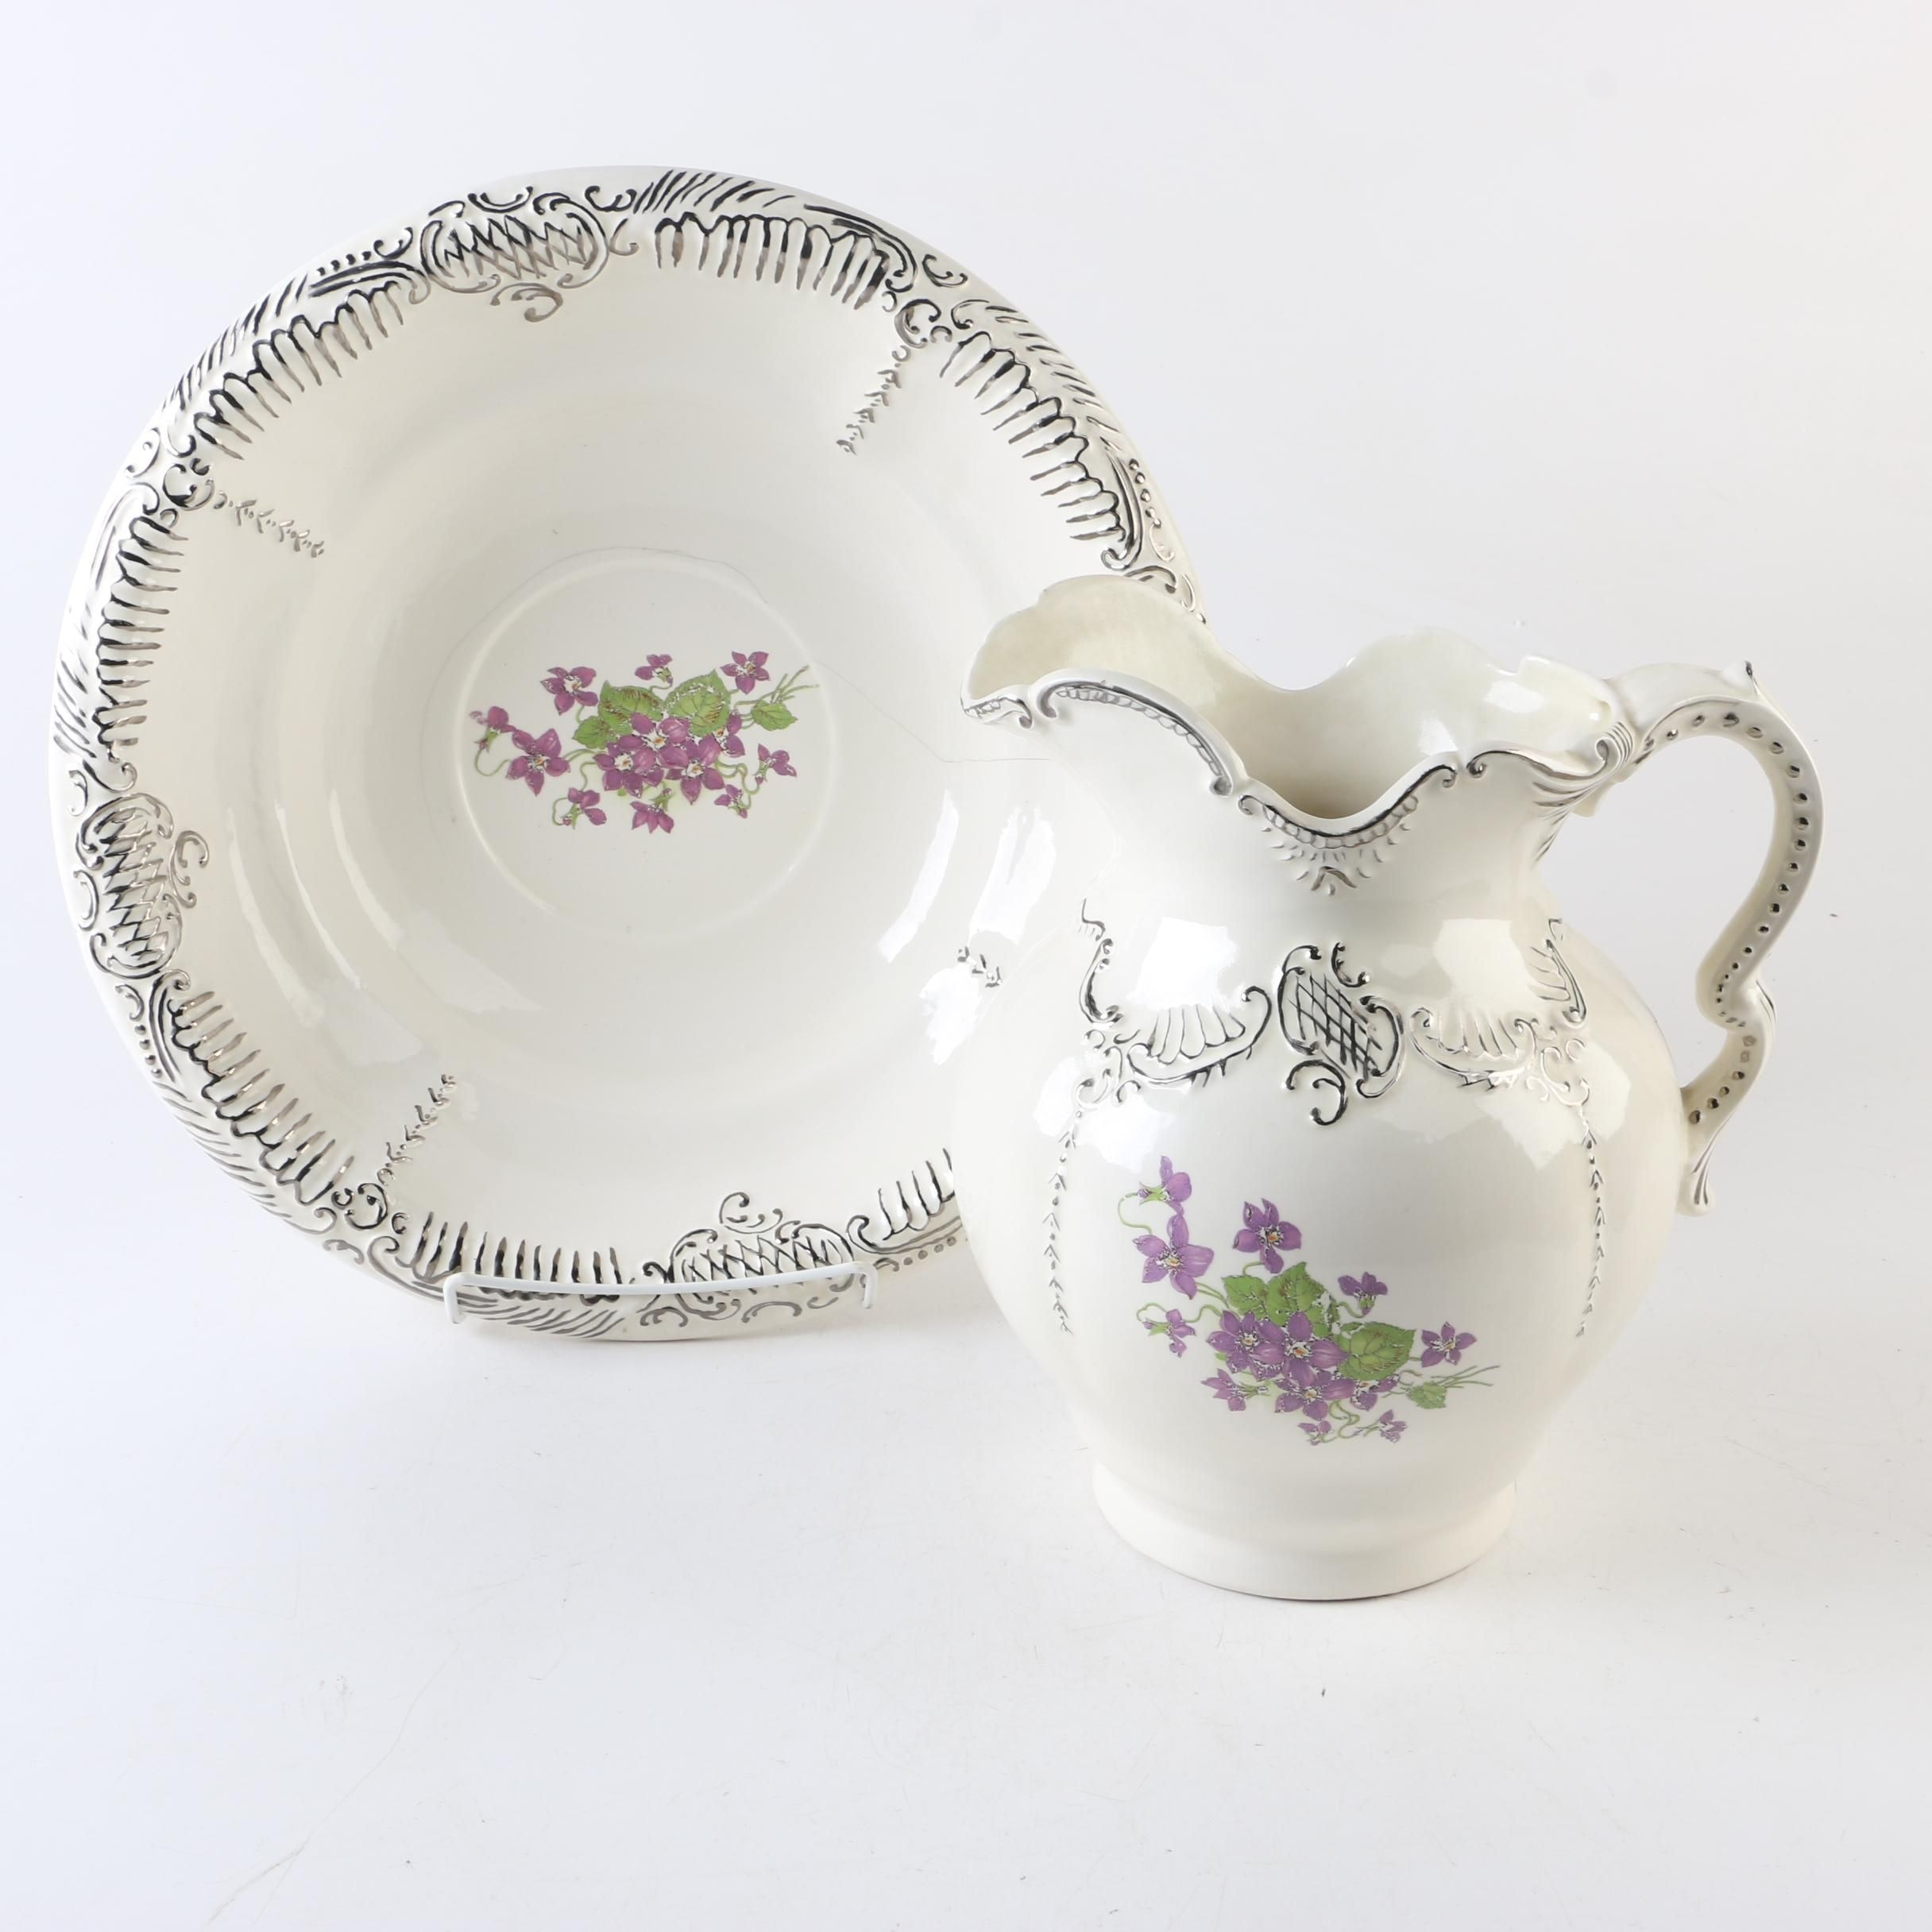 Superior Ceramic Floral Motif Bowl and Pitcher